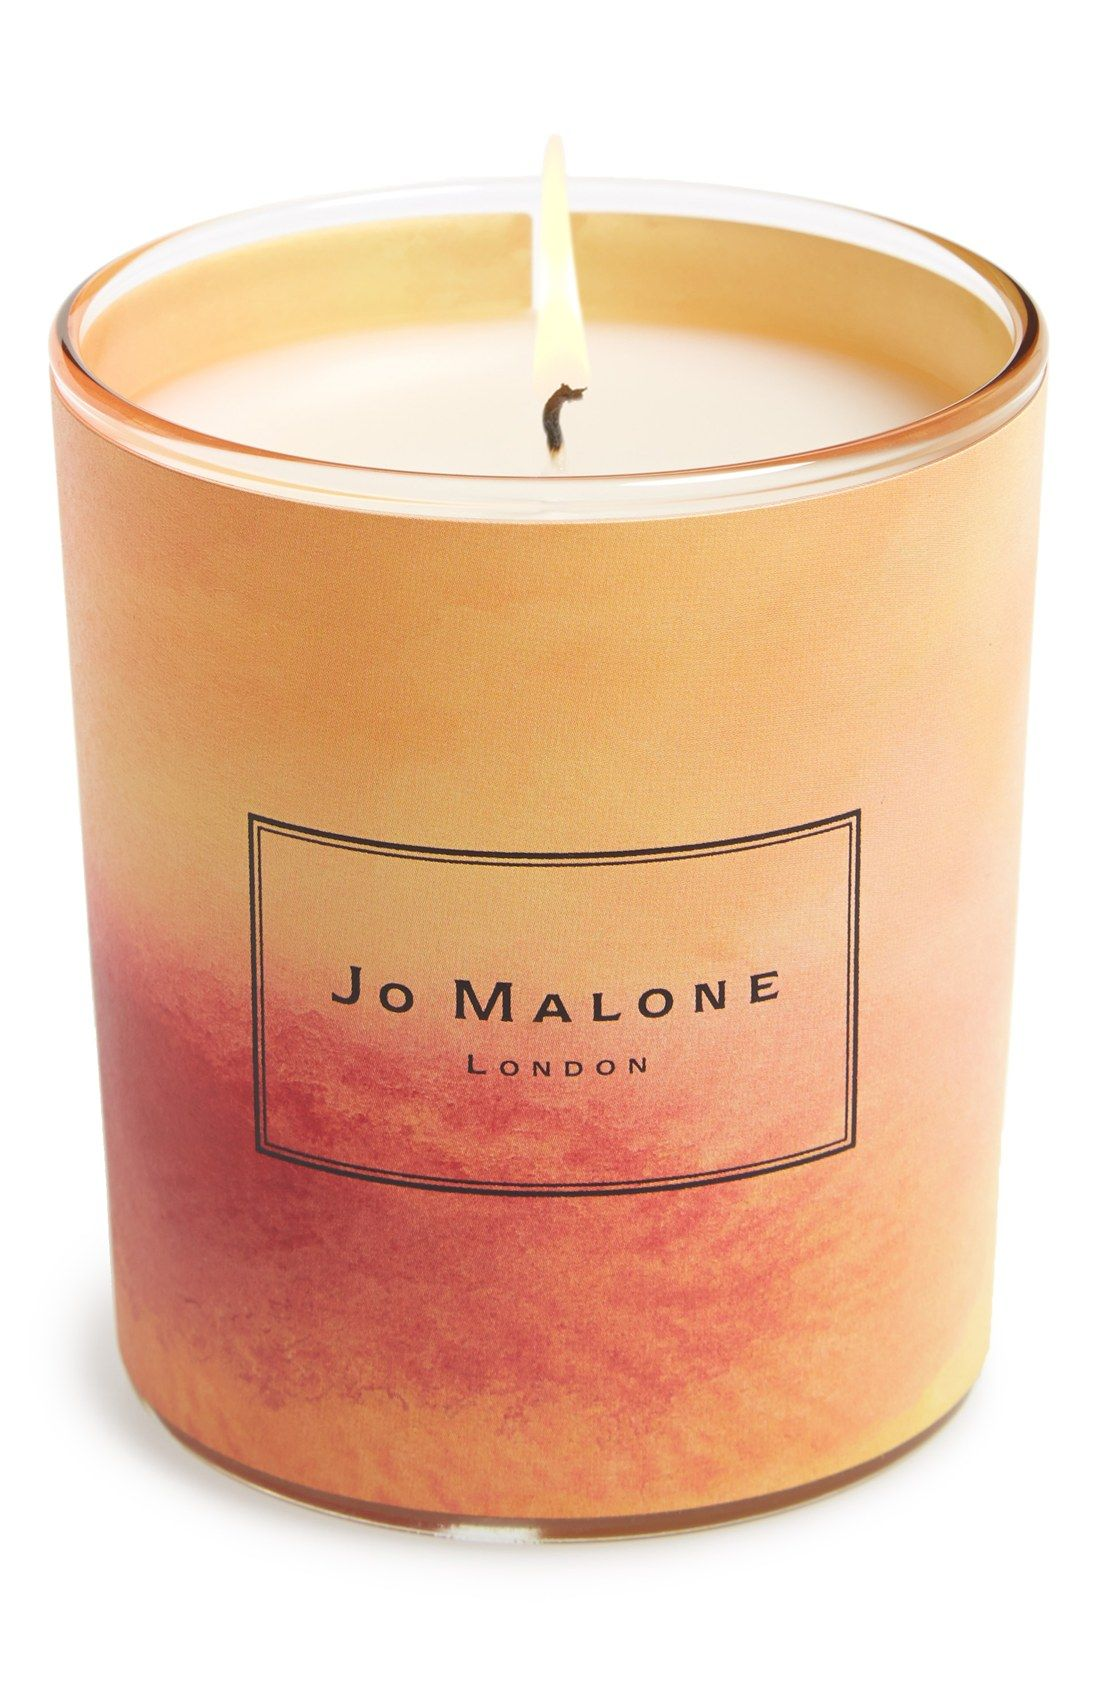 new jo malone candle for the home beauty home candles. Black Bedroom Furniture Sets. Home Design Ideas